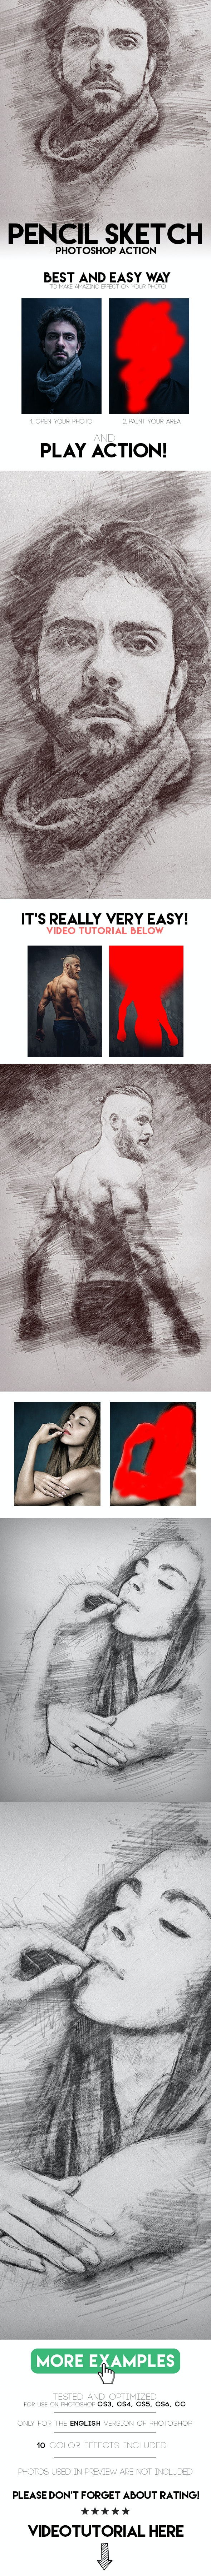 Pencil Sketch Photoshop Action - Photo Effects Actions